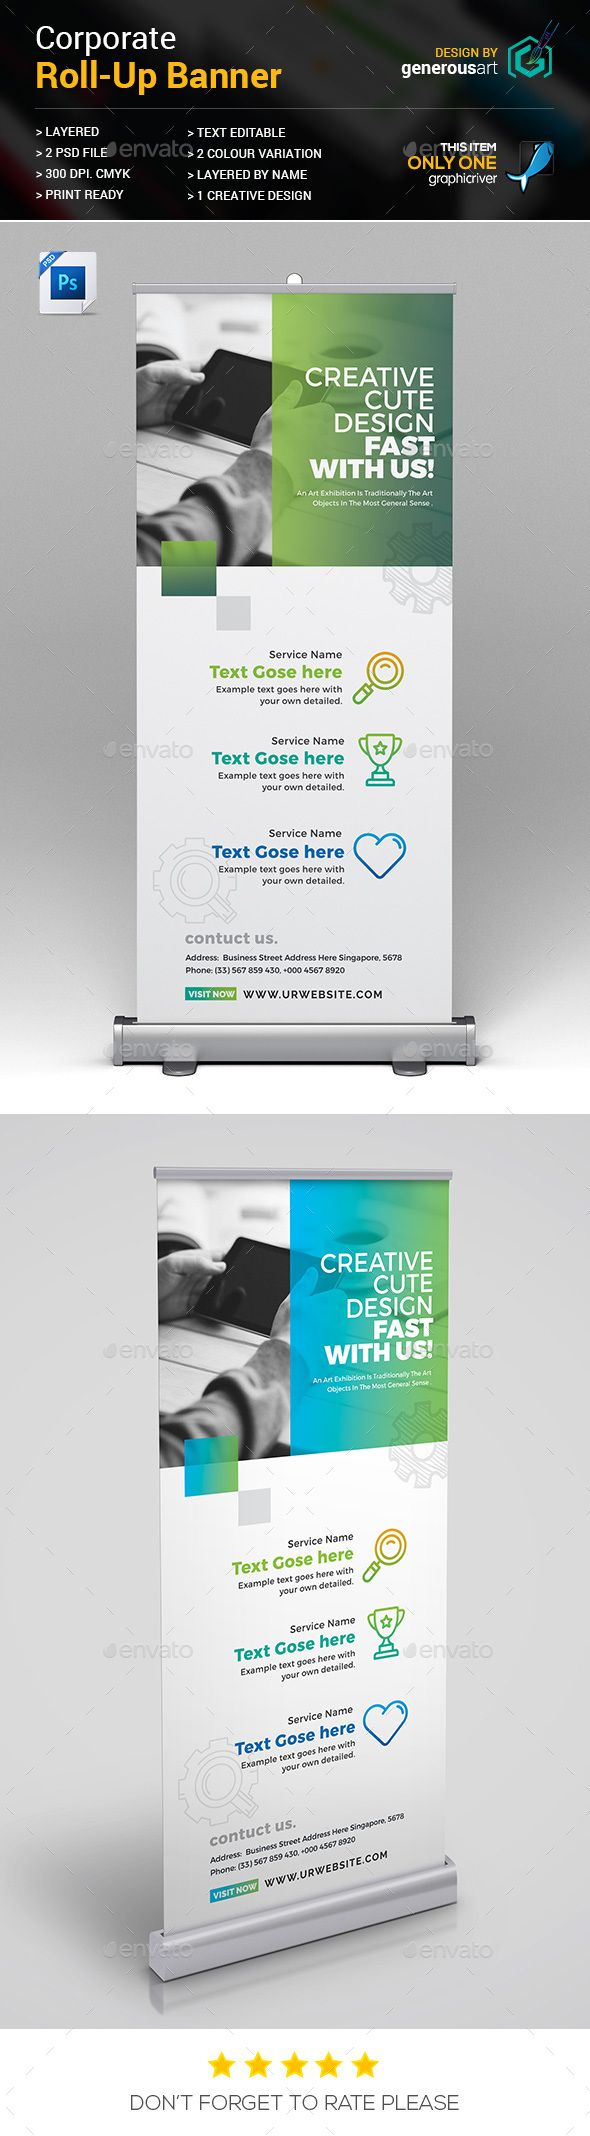 Corporate Creative Roll-Up Banner Ads Design Template - Signage RollUp Banner Design Template PSD. Download here: https://graphicriver.net/item/rollup-banner/18895769?ref=yinkira